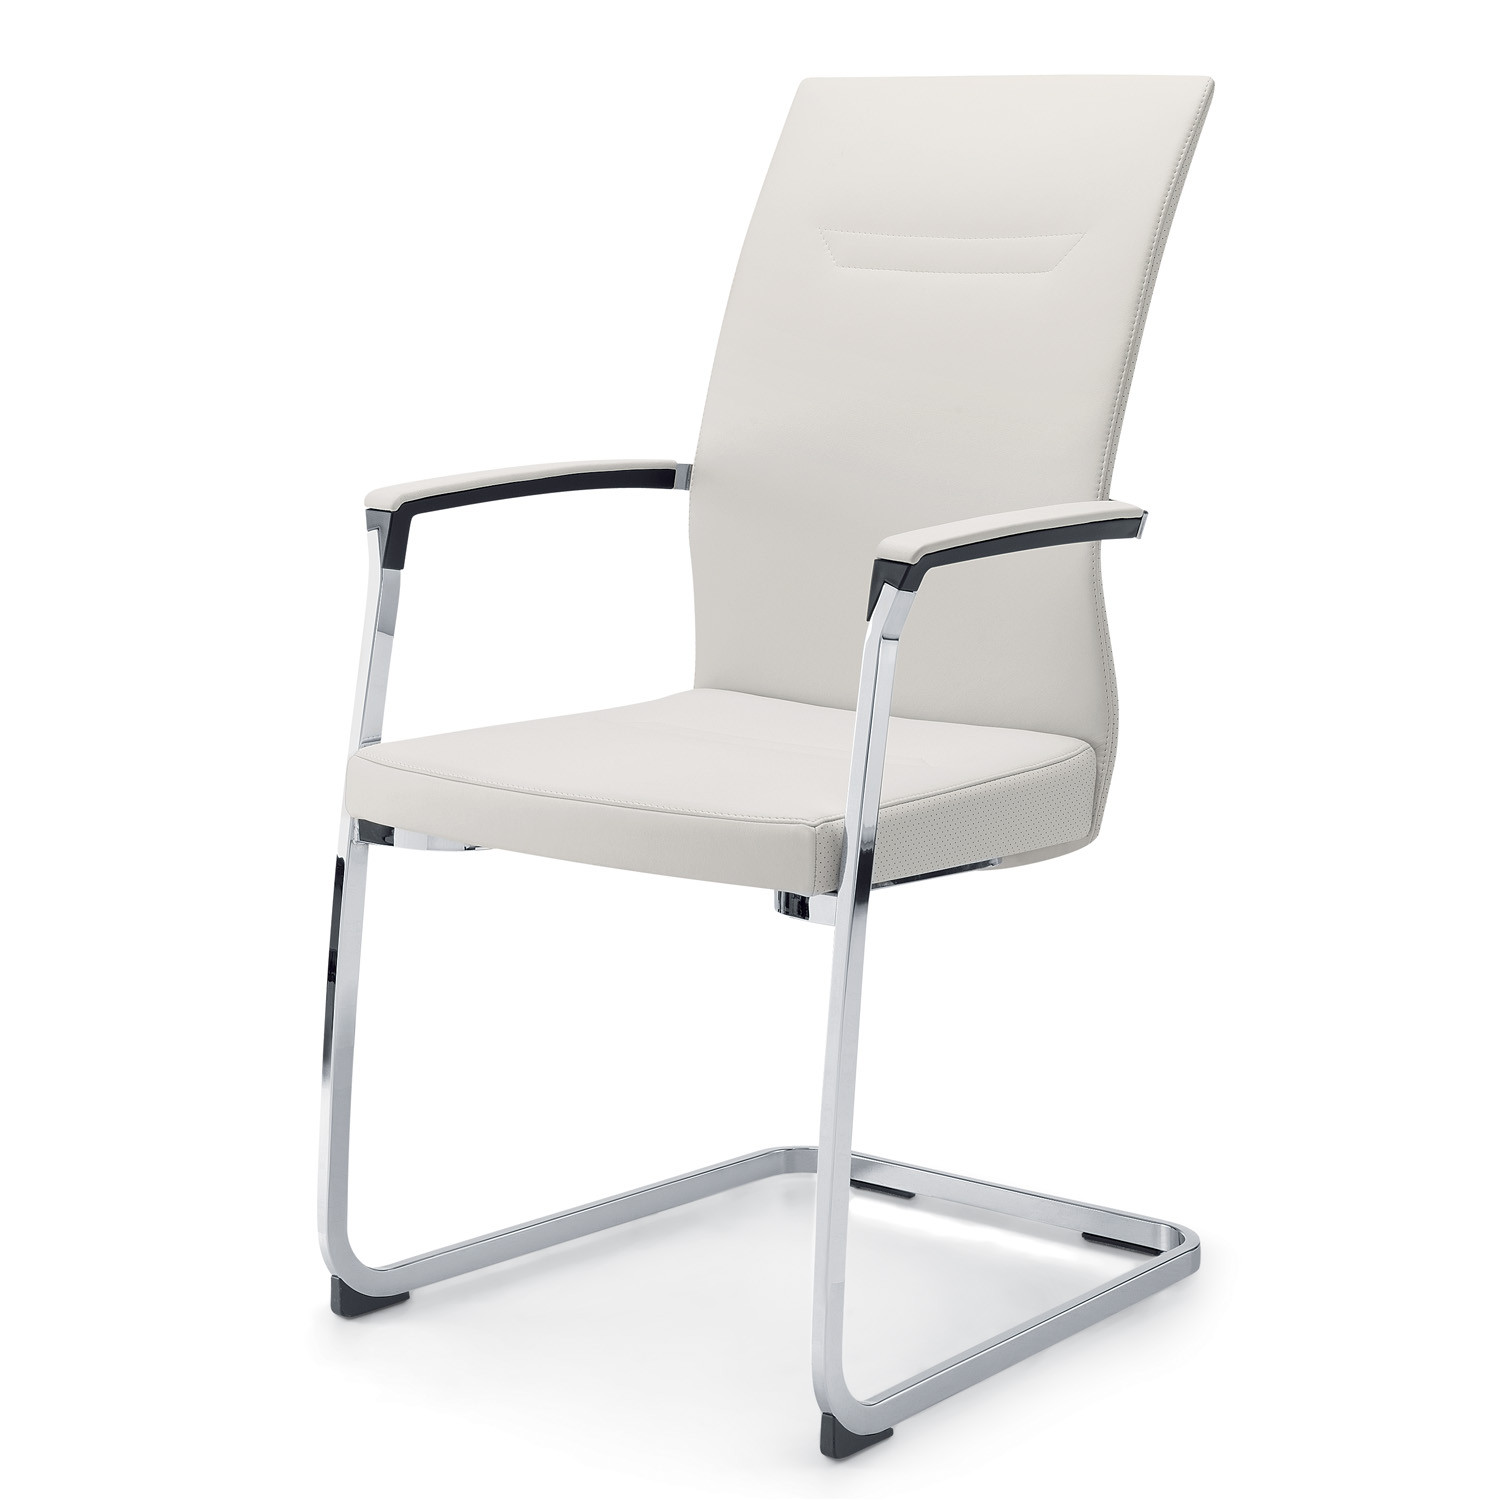 DucaRE Training Chairs